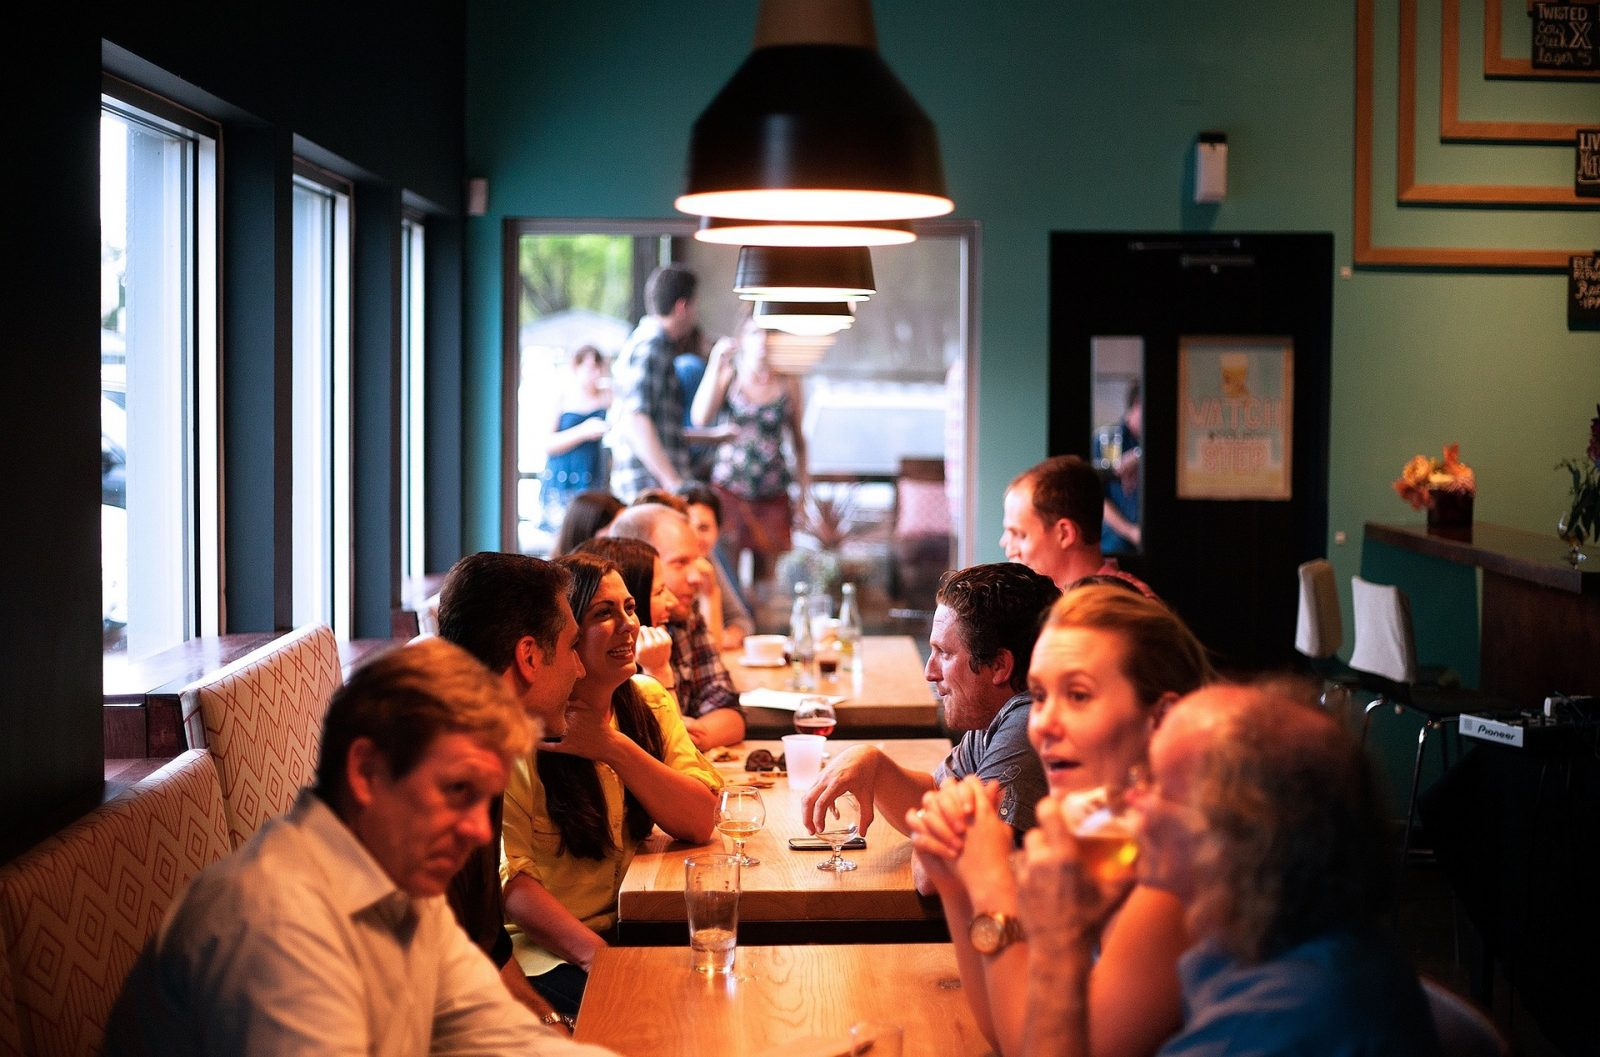 Noise can impact how we enjoy our meal